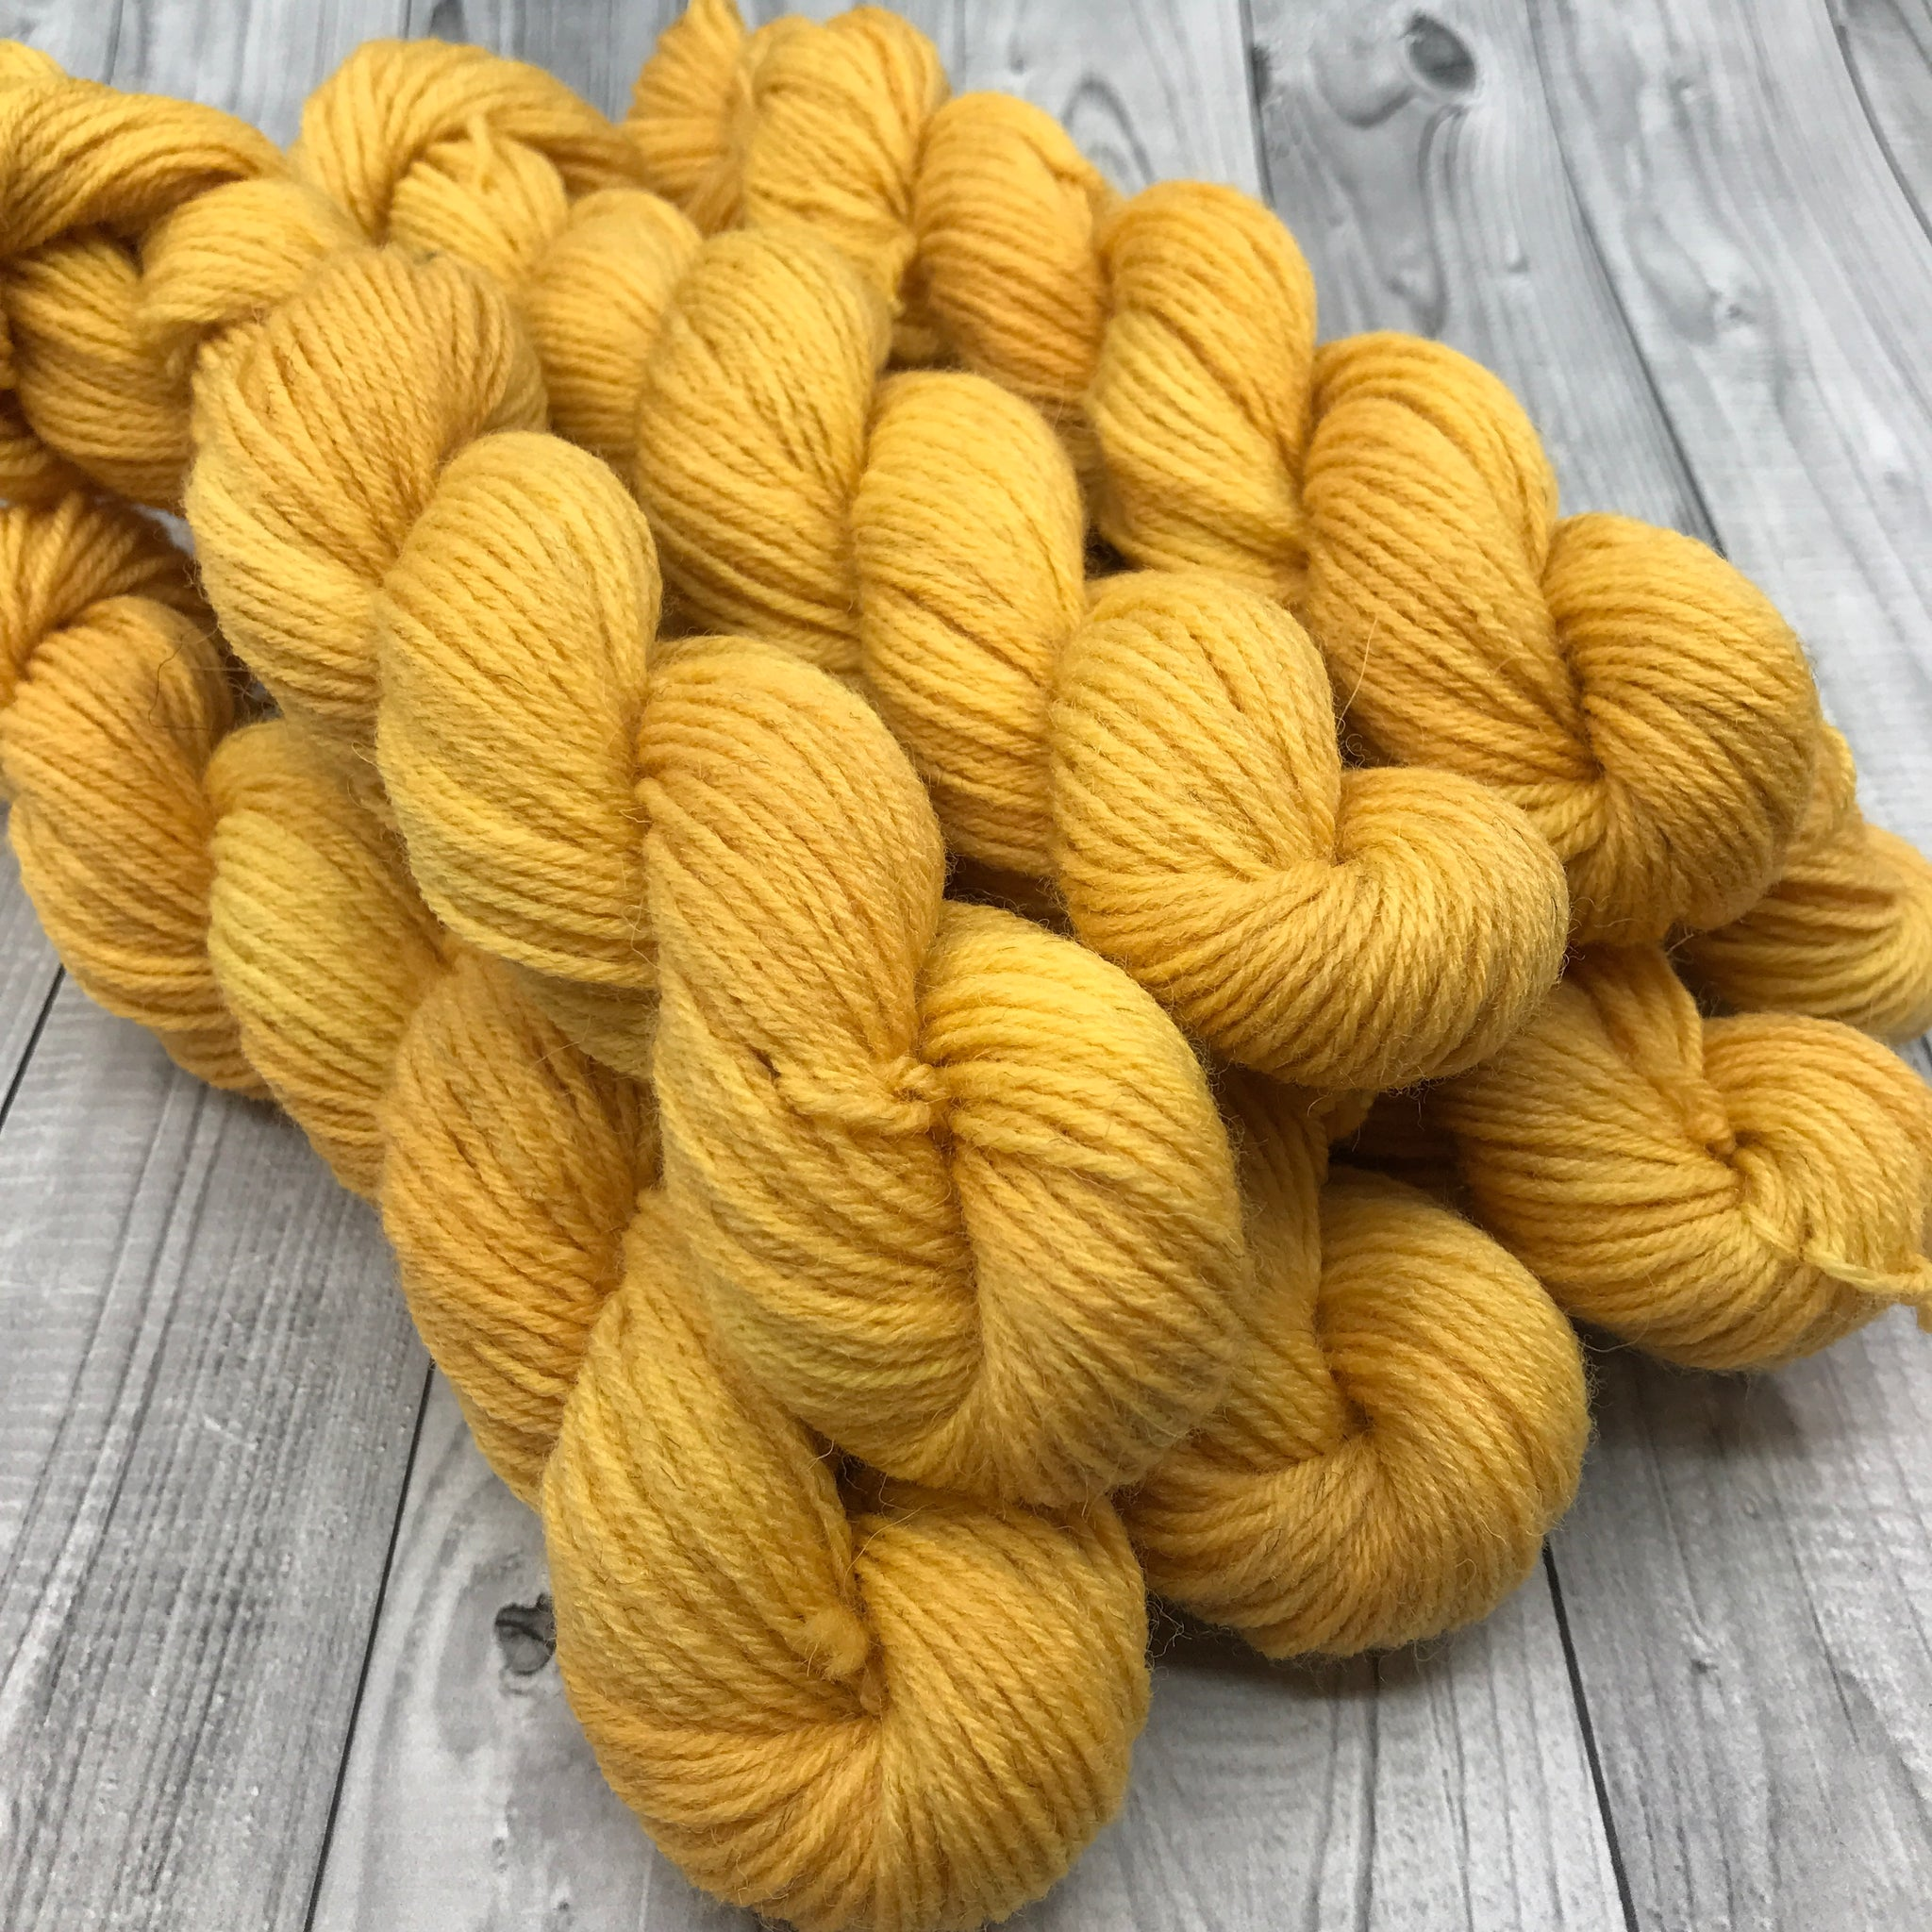 Hunter Highland DK - 20g Mini Skein- 2019 Fall- Warm Fall Sun